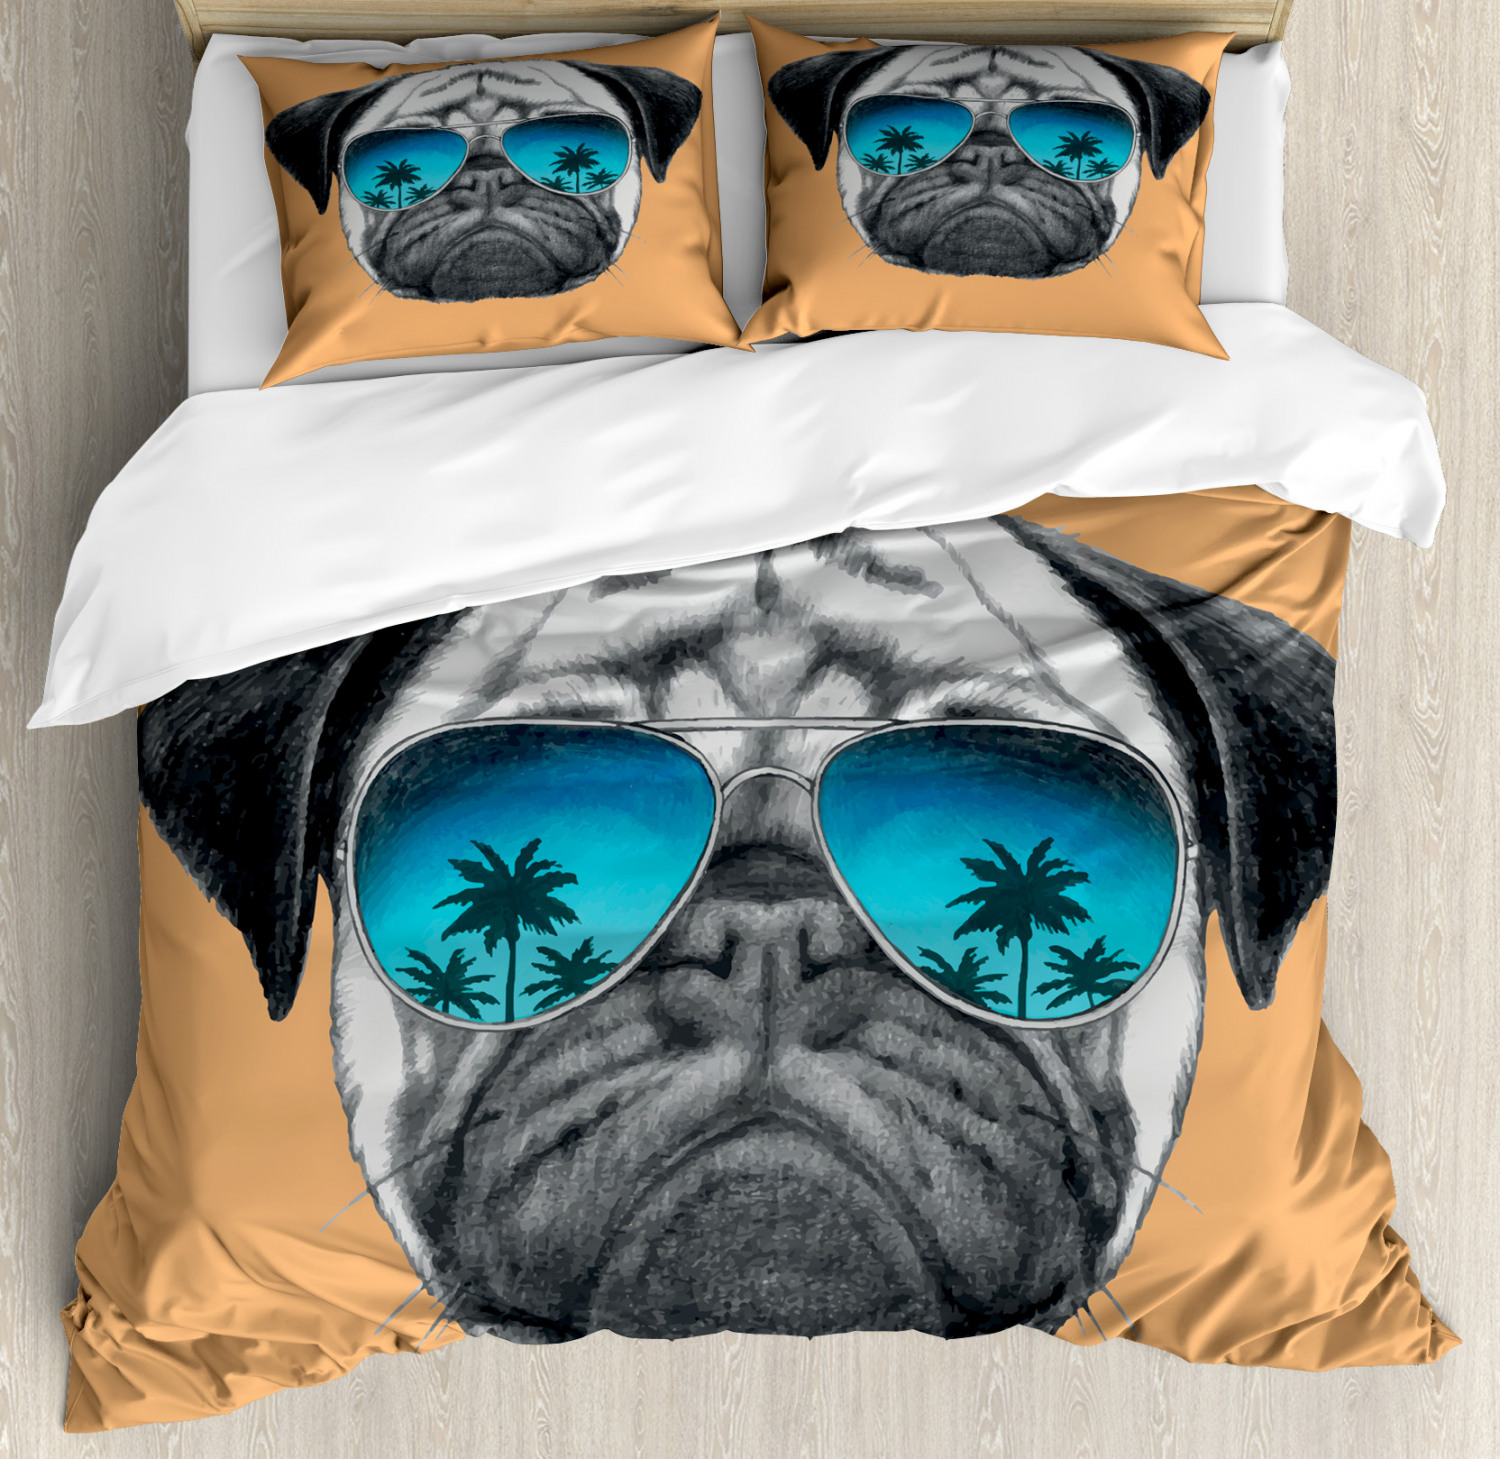 Pug Duvet Cover Set with Pillow Shams Dog and Stylish Sunglasses Print